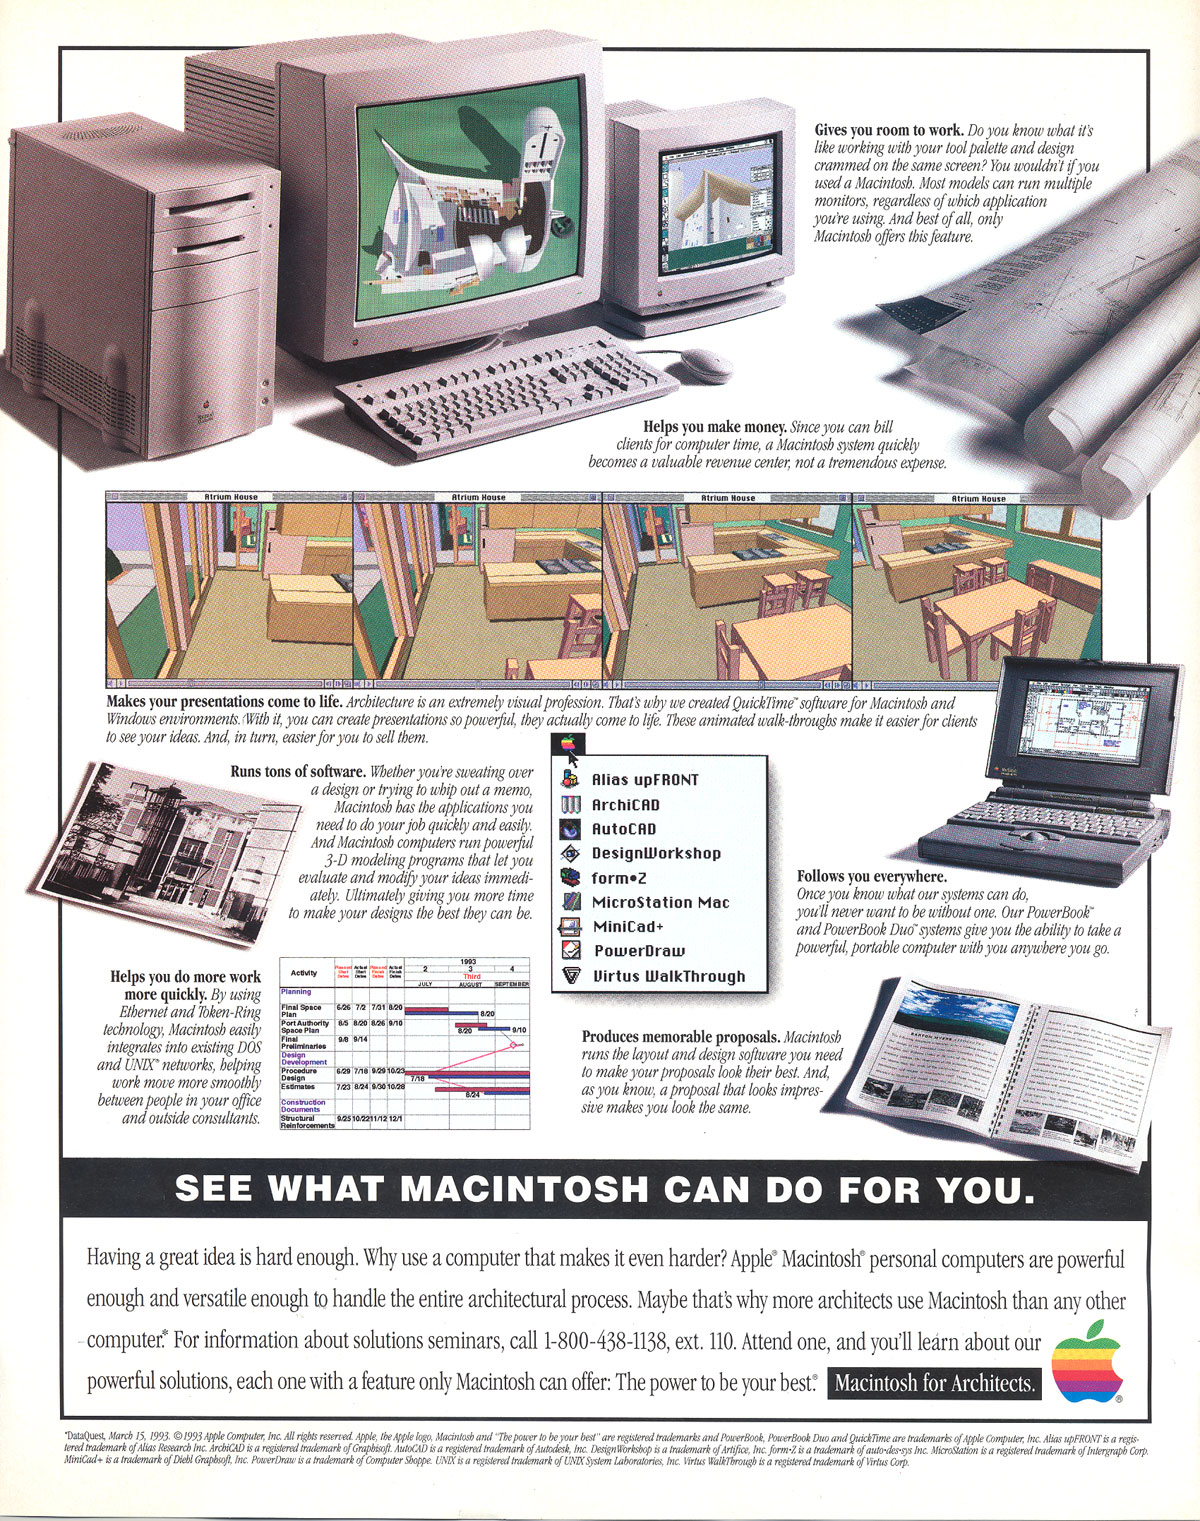 199304xx-macintosh-for-architects-print-ad.jpg